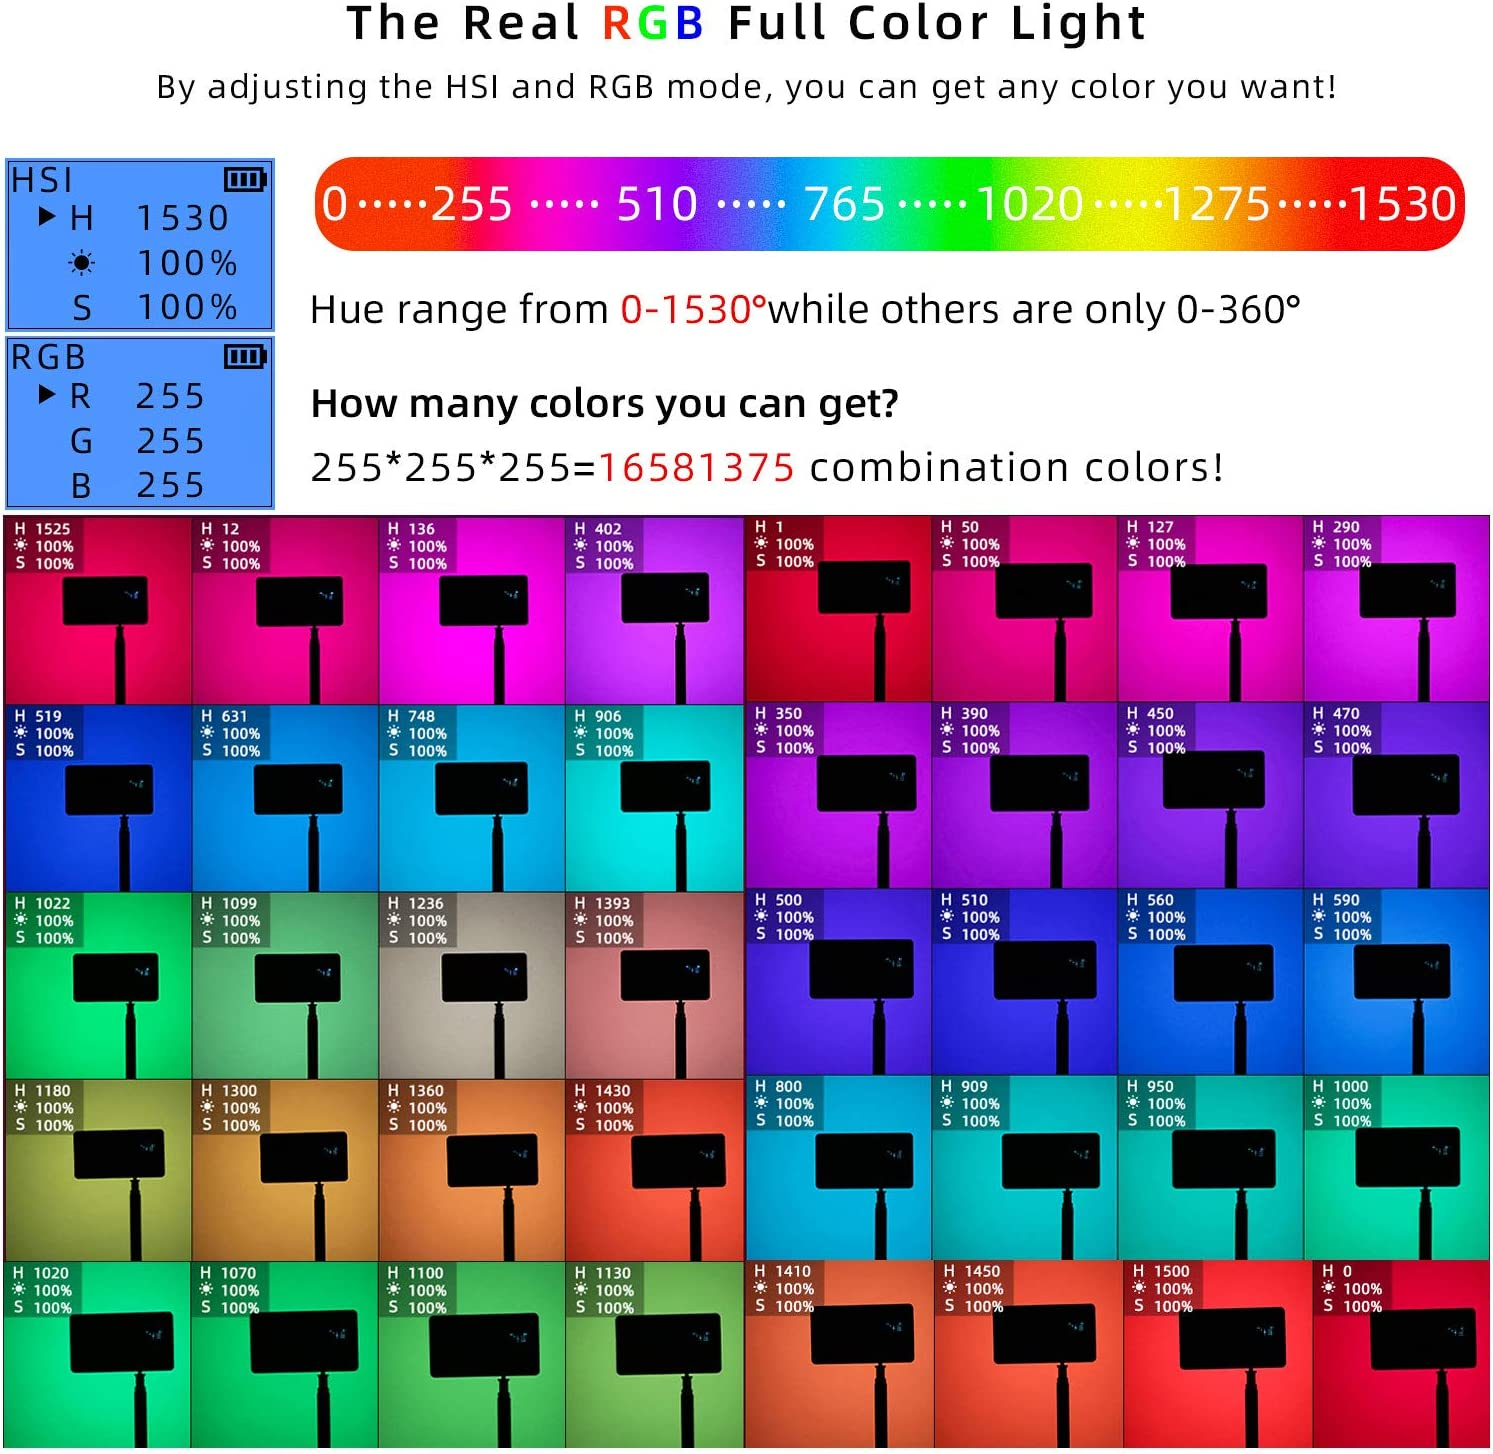 RGB Video Light Led Panel Portable Mini Built-in 7.4V 3300mAh Rechargeable Battery Light 1530/°Full Color 2500-8500K with Aerometal Alloy Shell for Camera Photography Youtube Studio Filming Recording